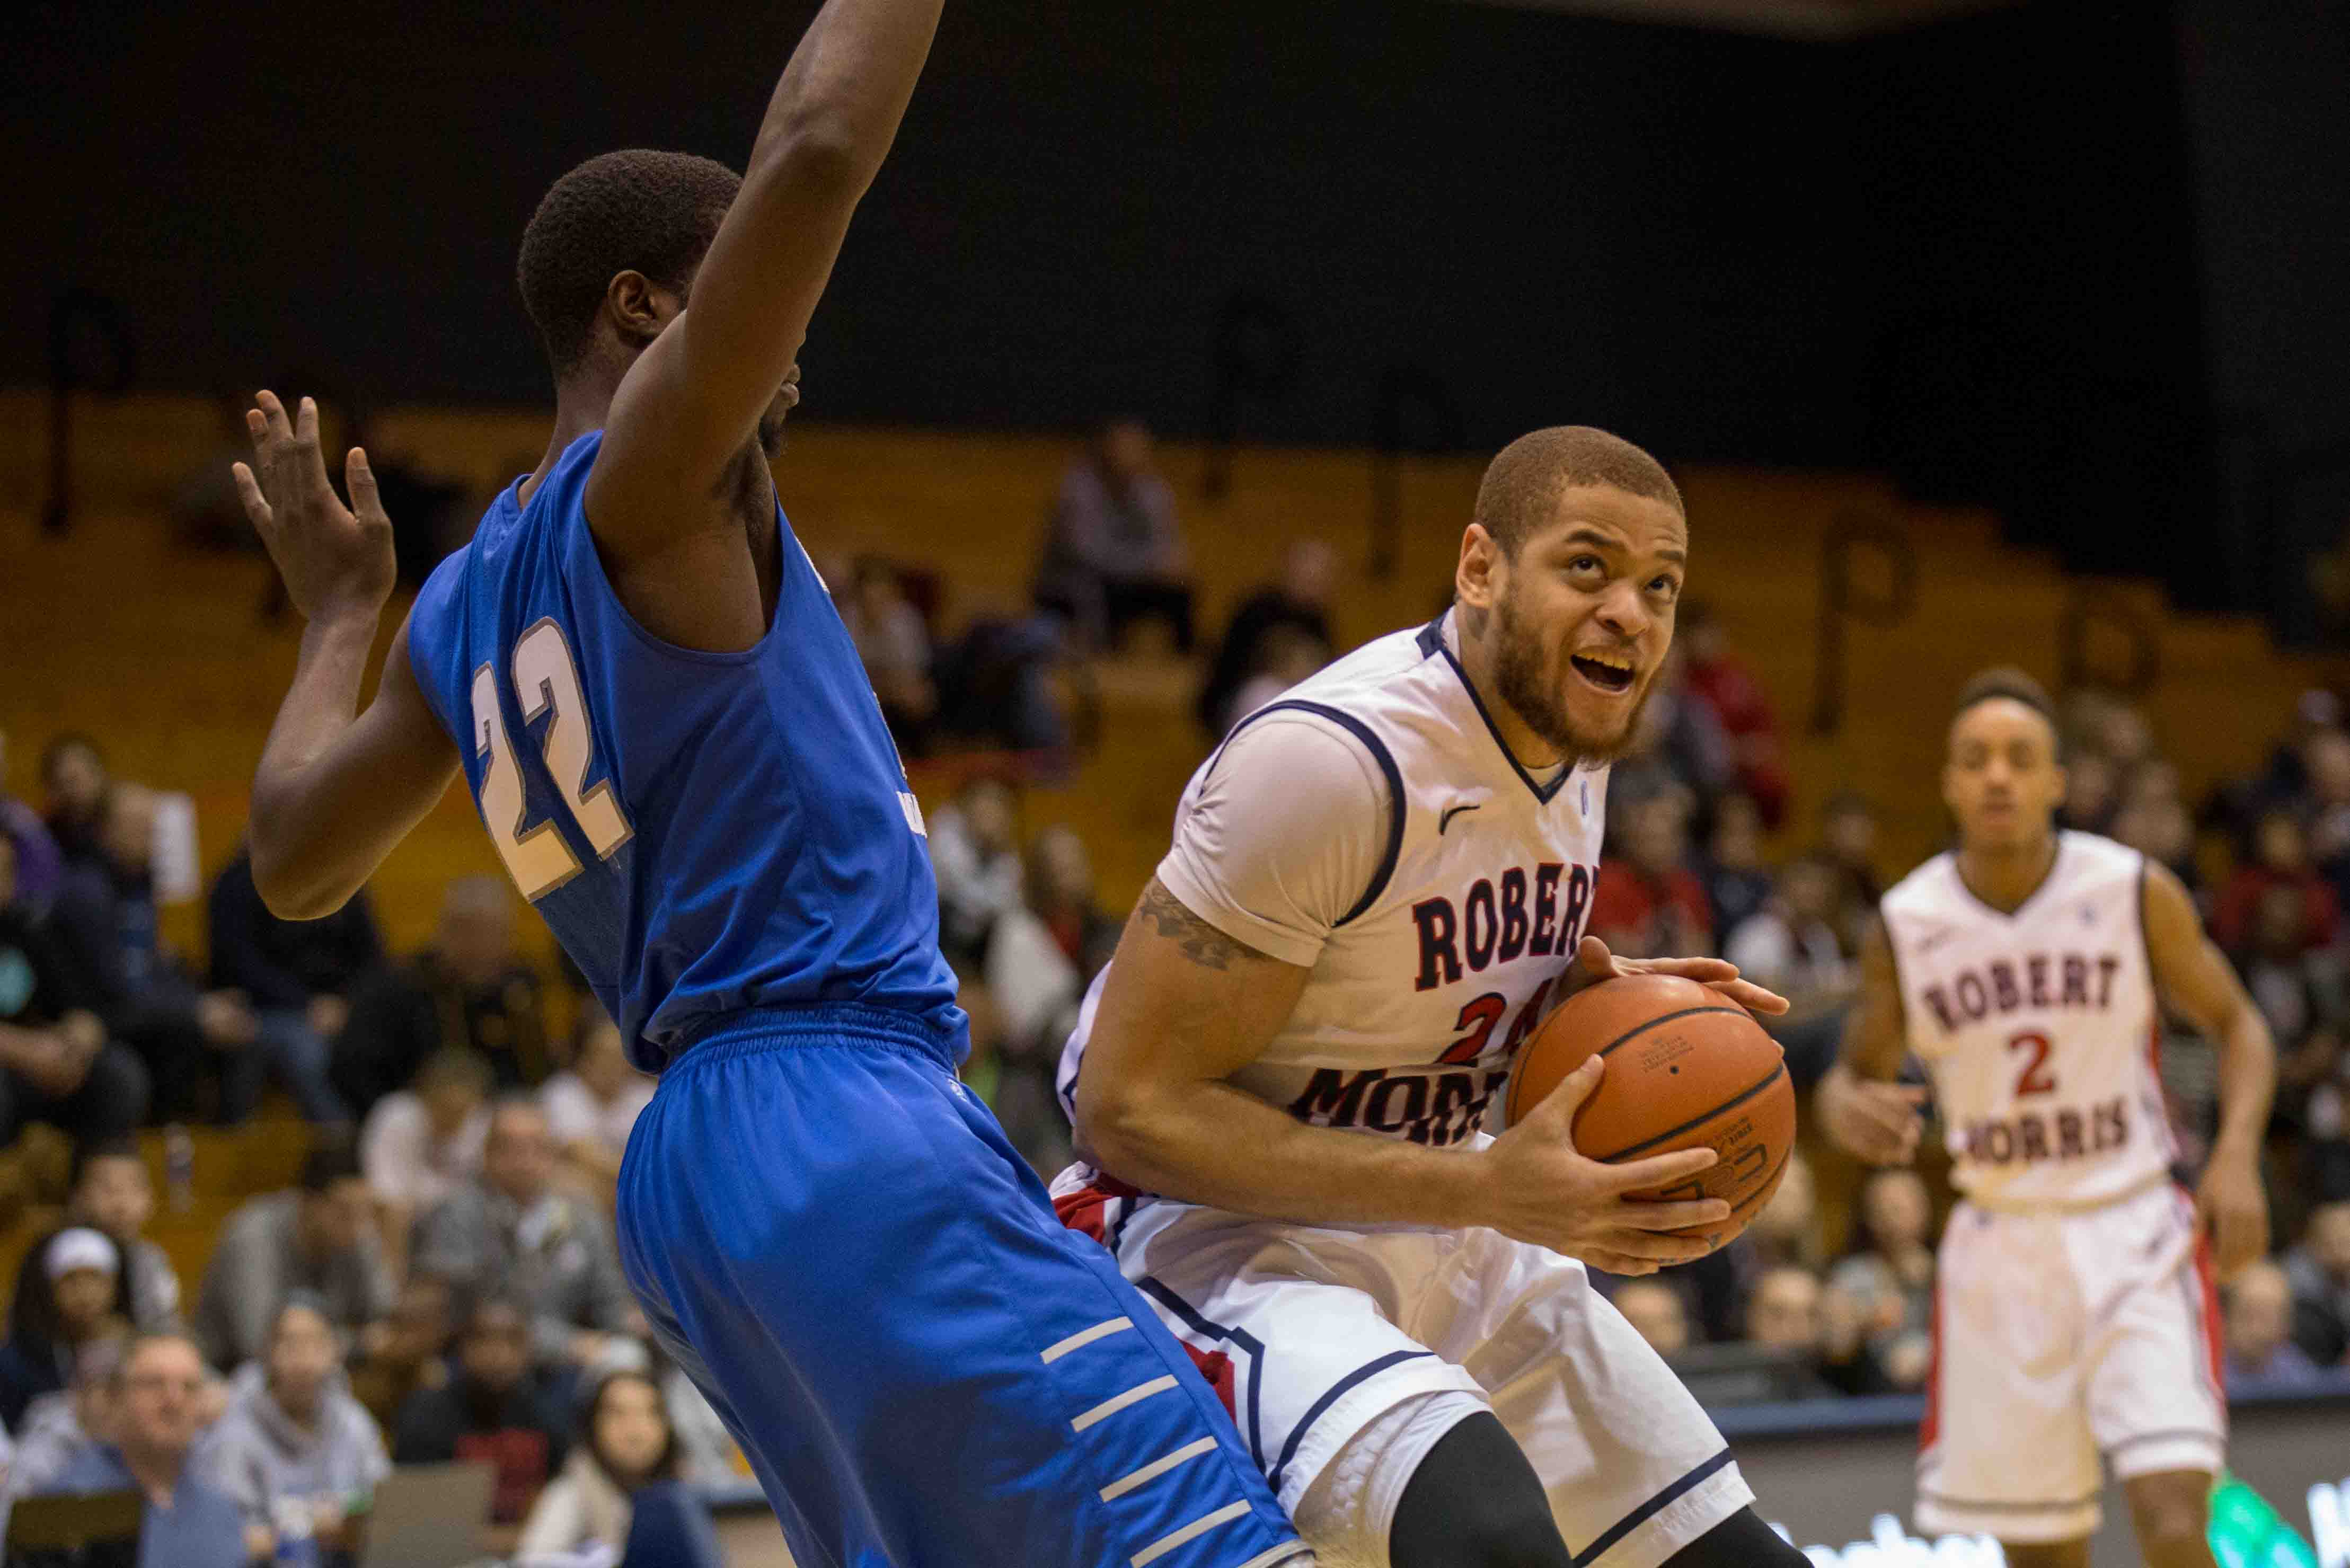 Aaron Tate tipped-in a Marcquise Reed floater as time expired to propel RMU to a 53-52 win over CCSU.